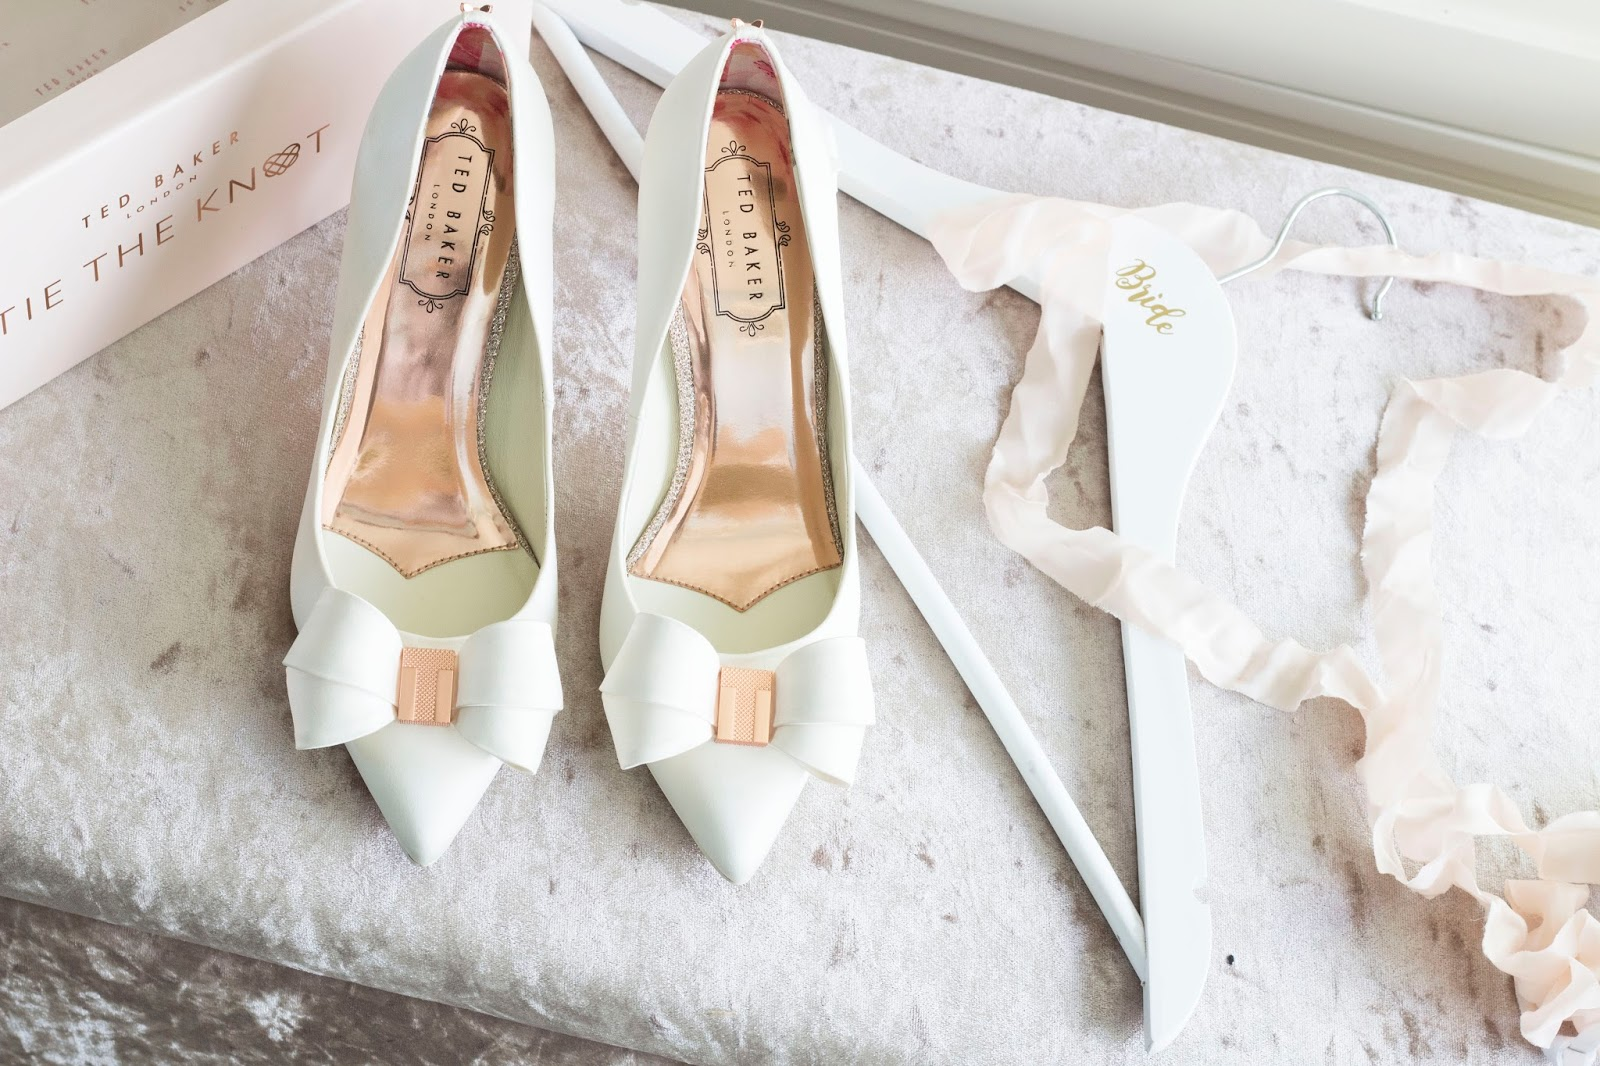 Ted Baker Wedding Shoes - Tie The Knot